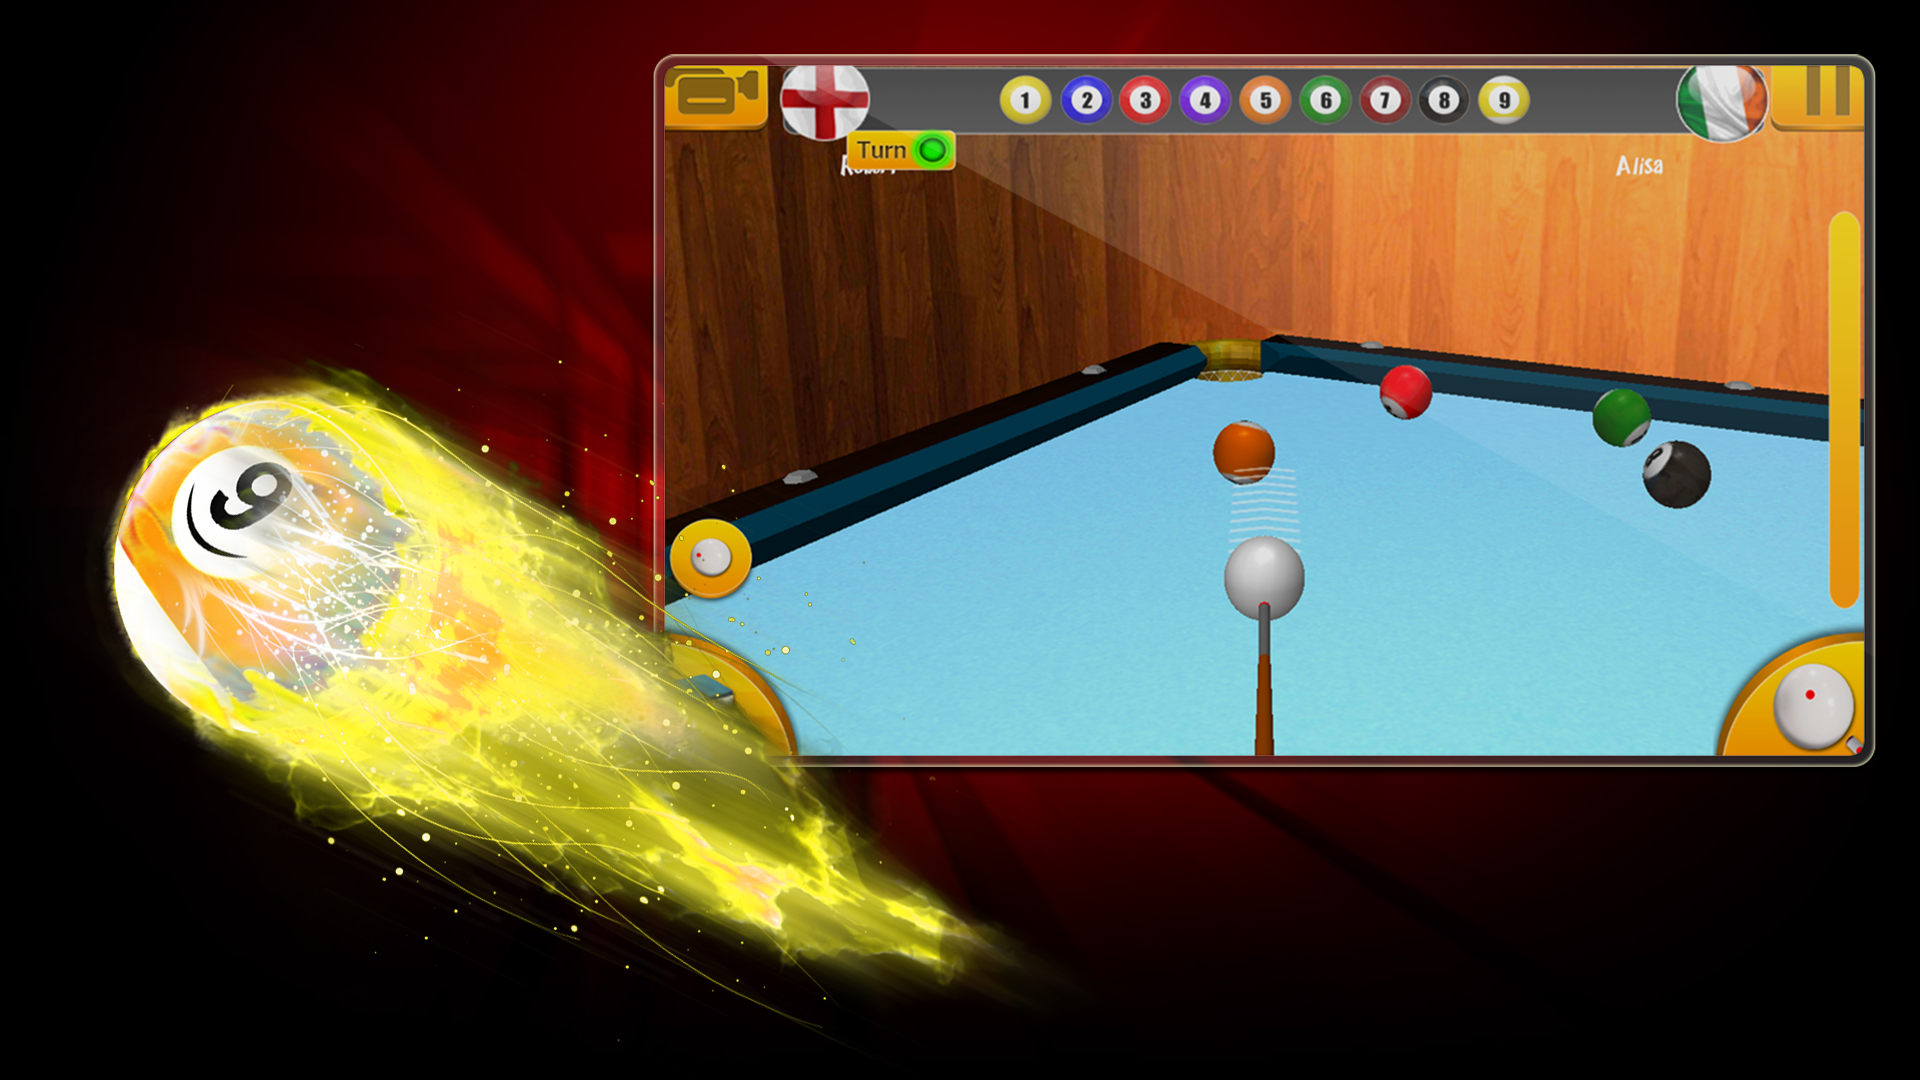 9 Ball Pool Pro-Snooker: Amazon.es: Appstore para Android